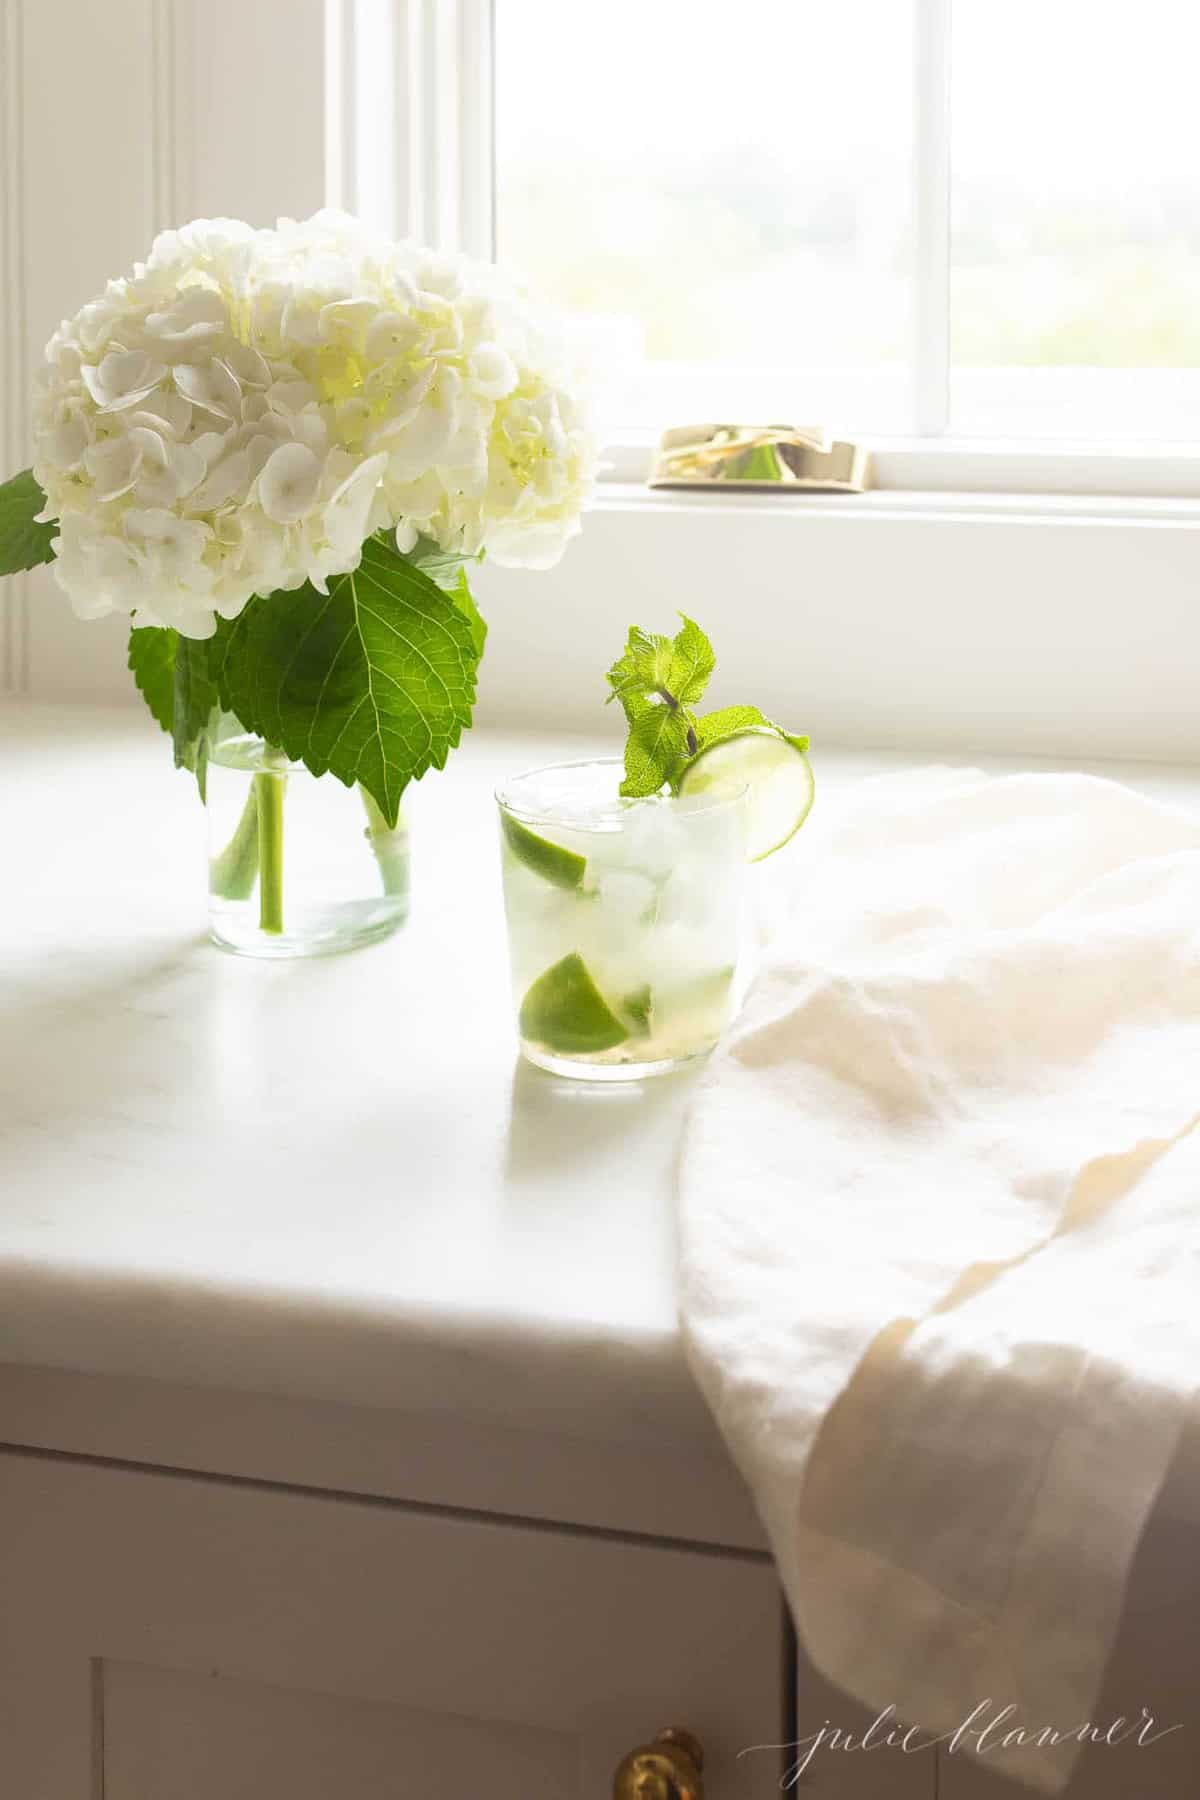 skinny mojito next to a linen napkin and vase of hydrangea